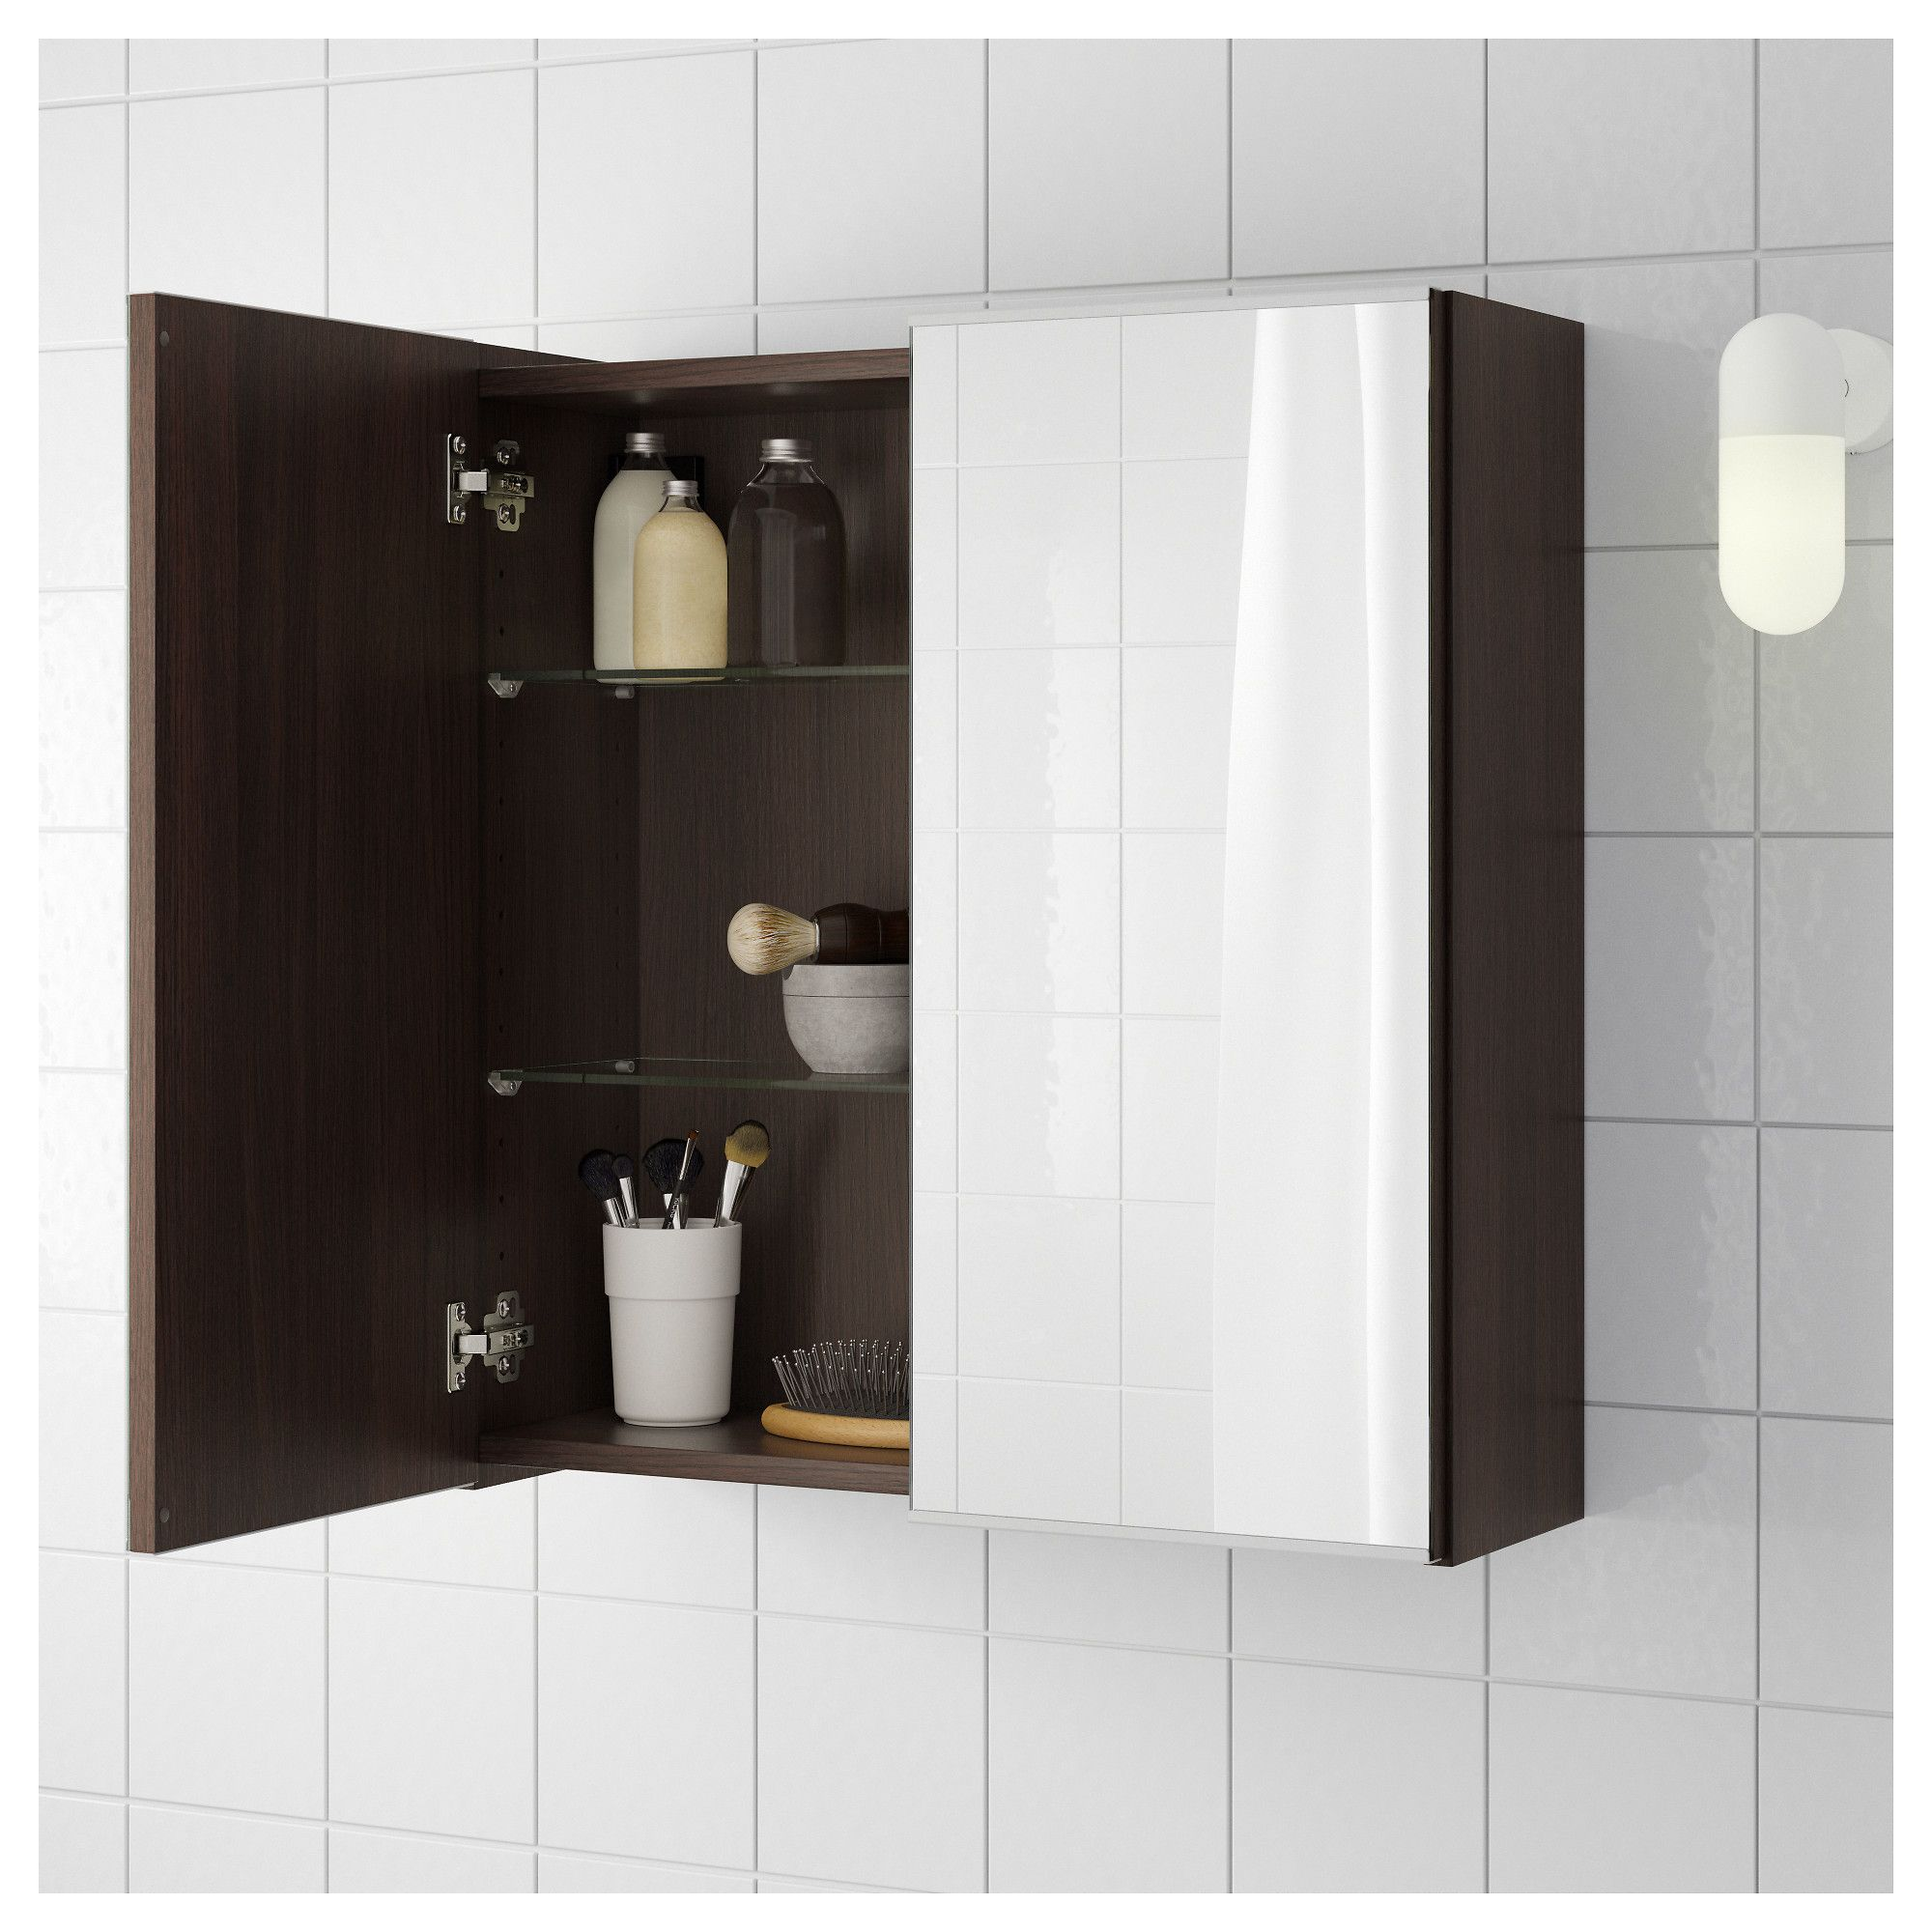 Ikea LillÅngen Mirror Cabinet With 2 Doors Black Brown